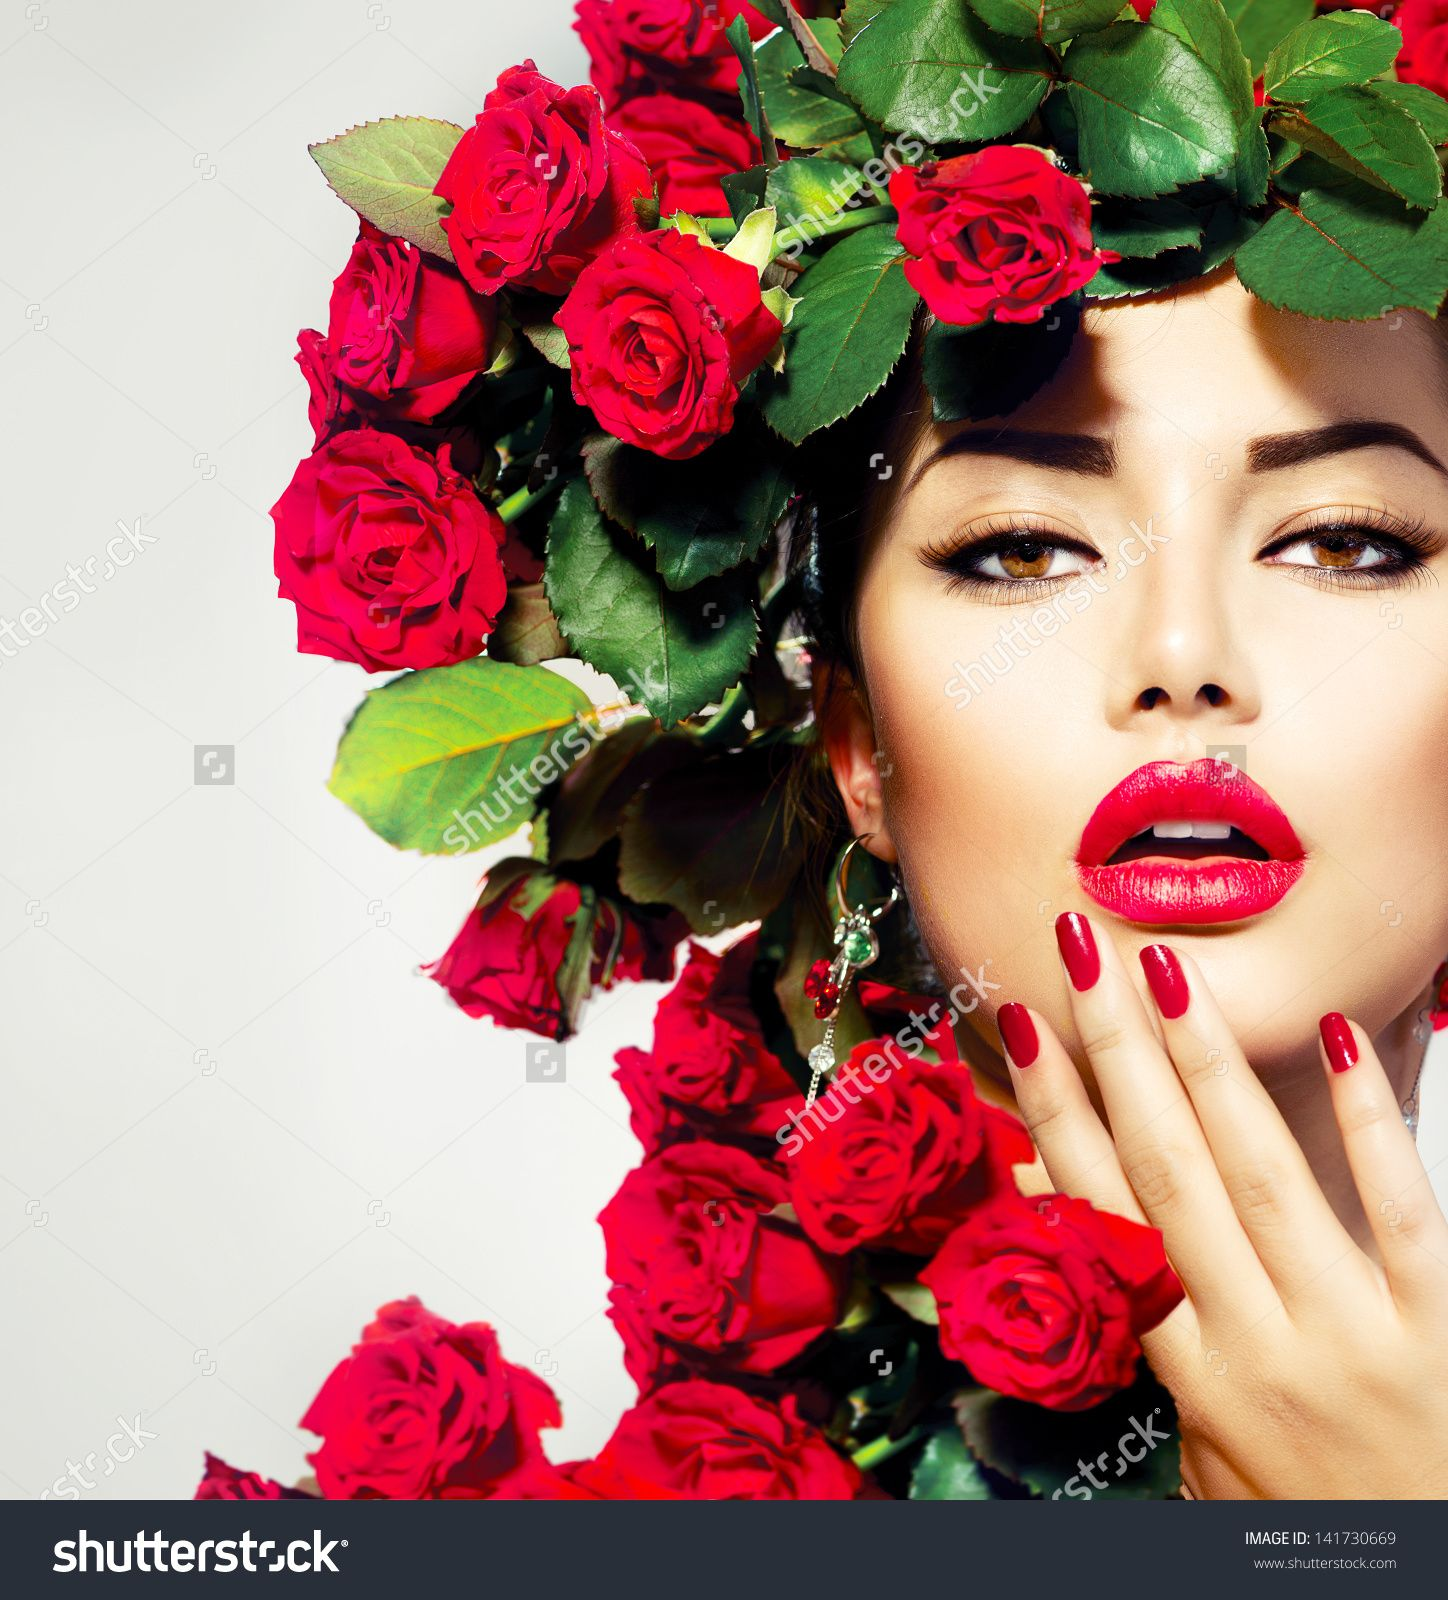 Beauty Fashion Model Girl Portrait With Red Roses